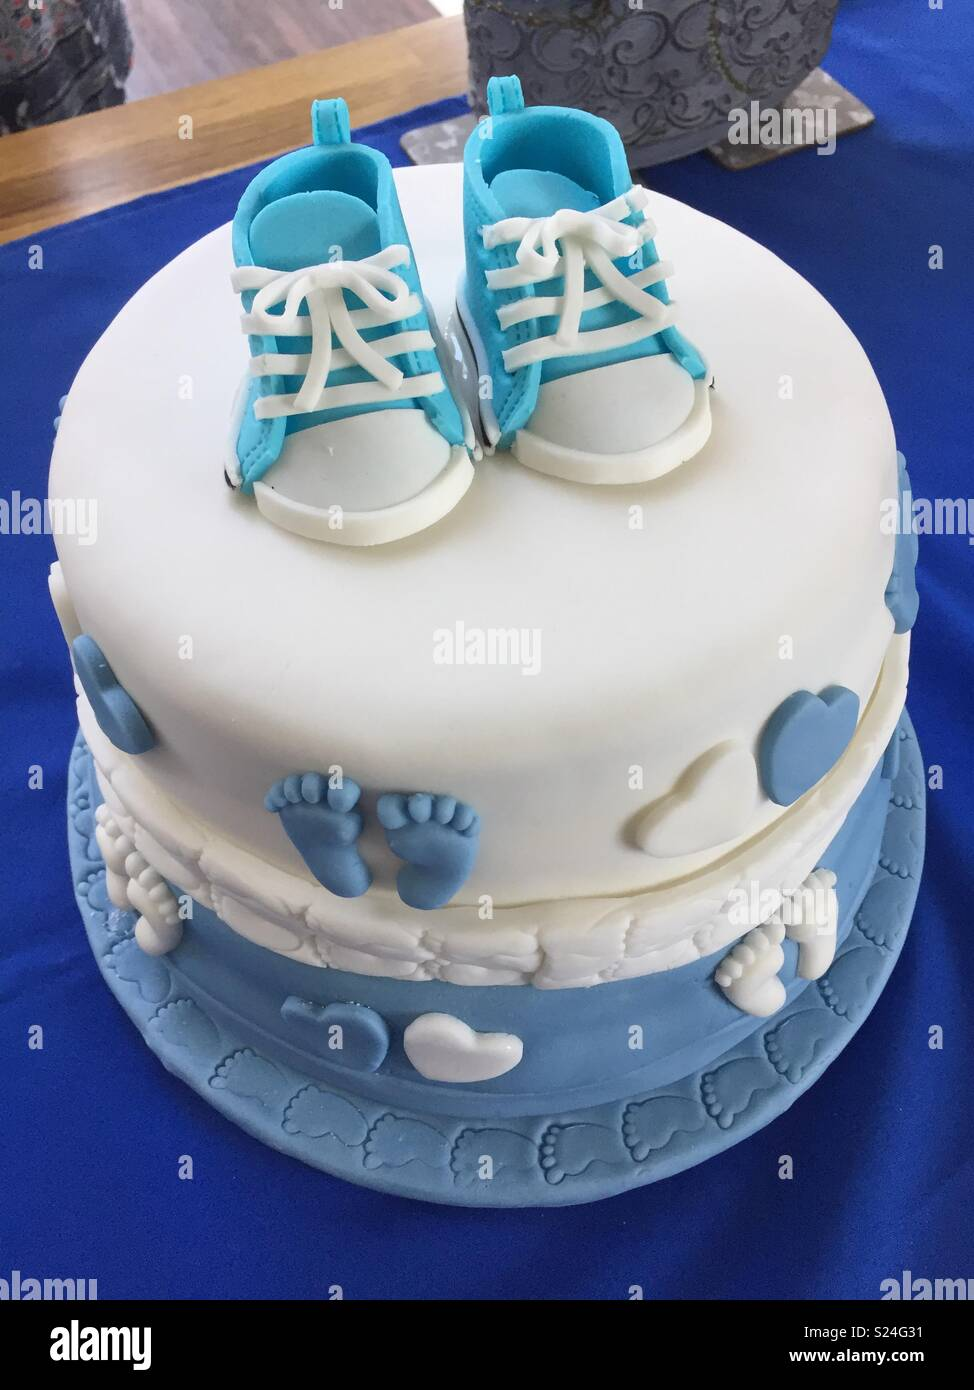 Baby boys christening cake - Stock Image